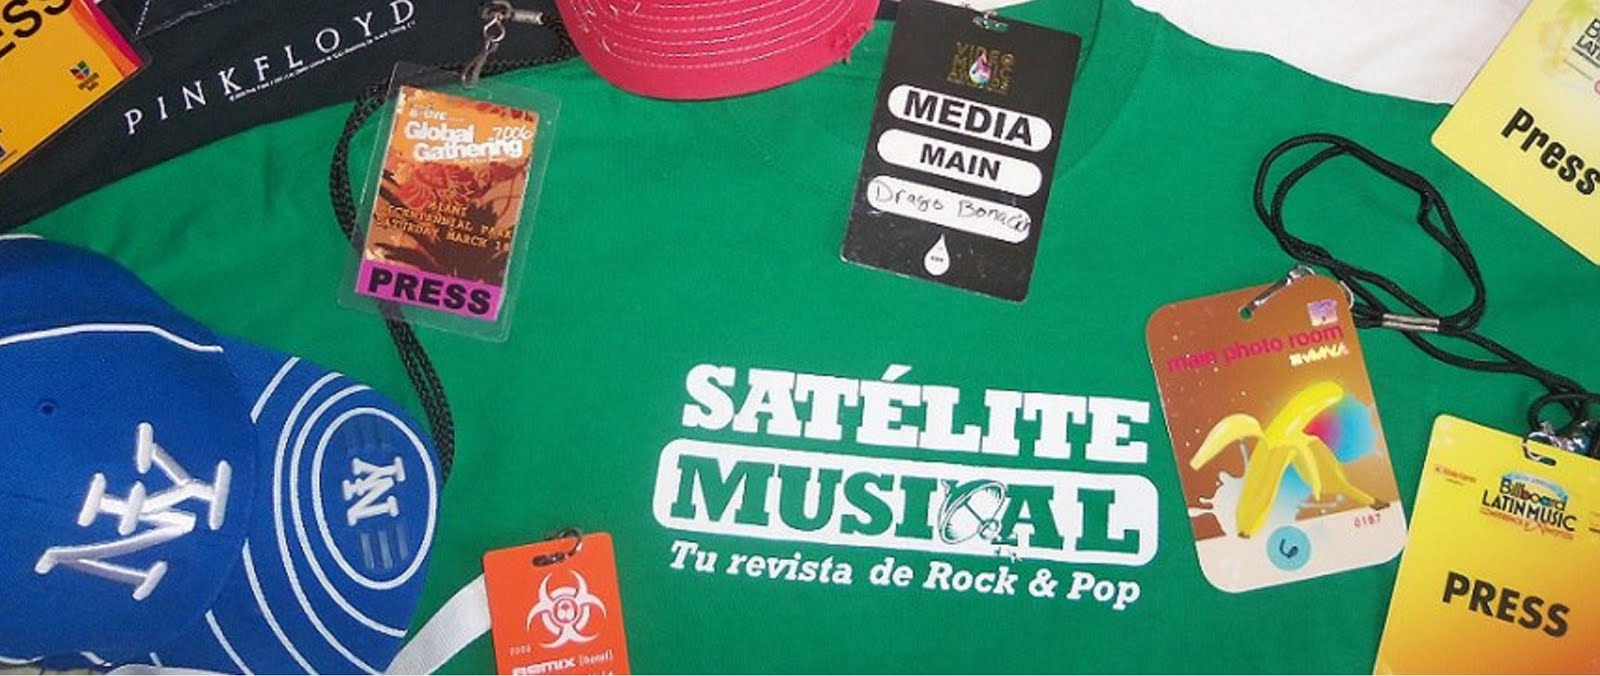 Blog de Satélite Musical